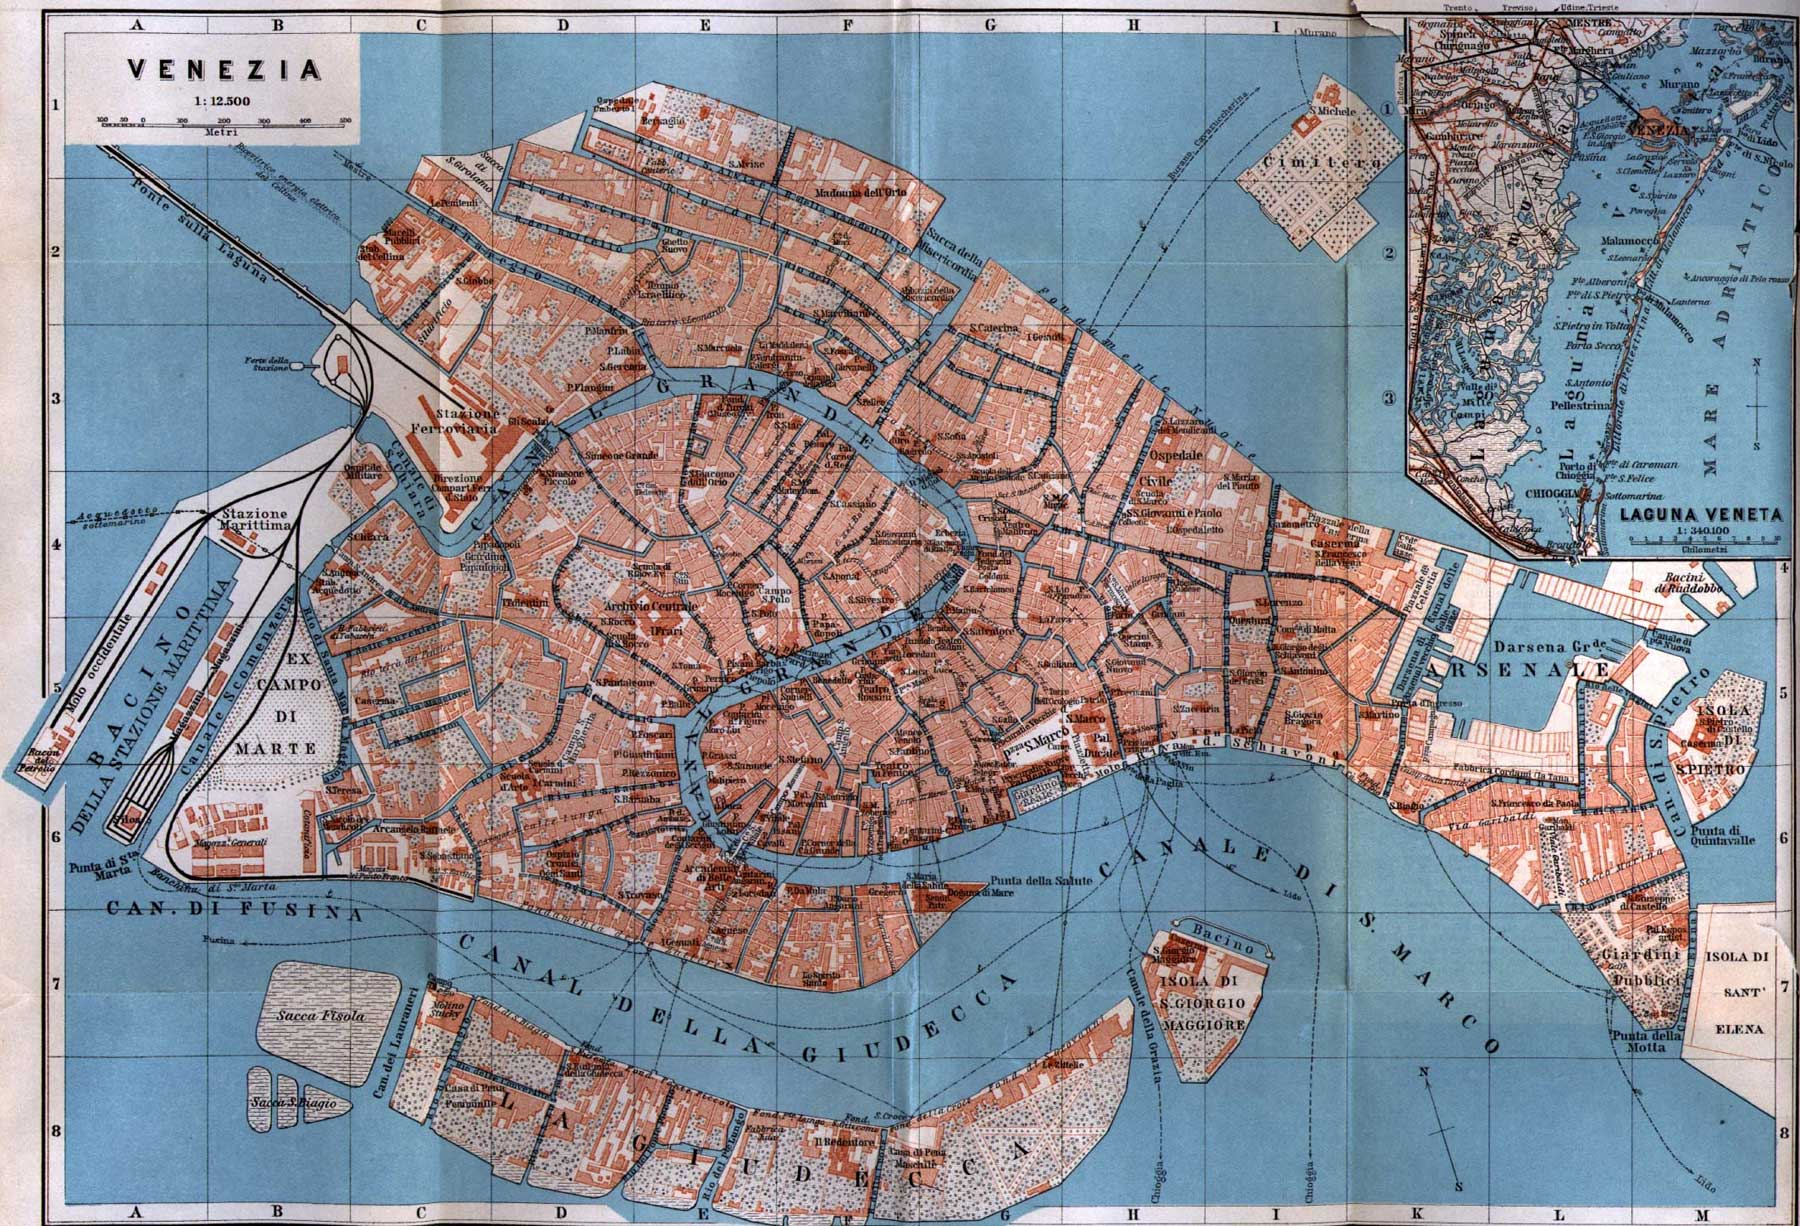 Detailed City Map of Venice (venezia) large map